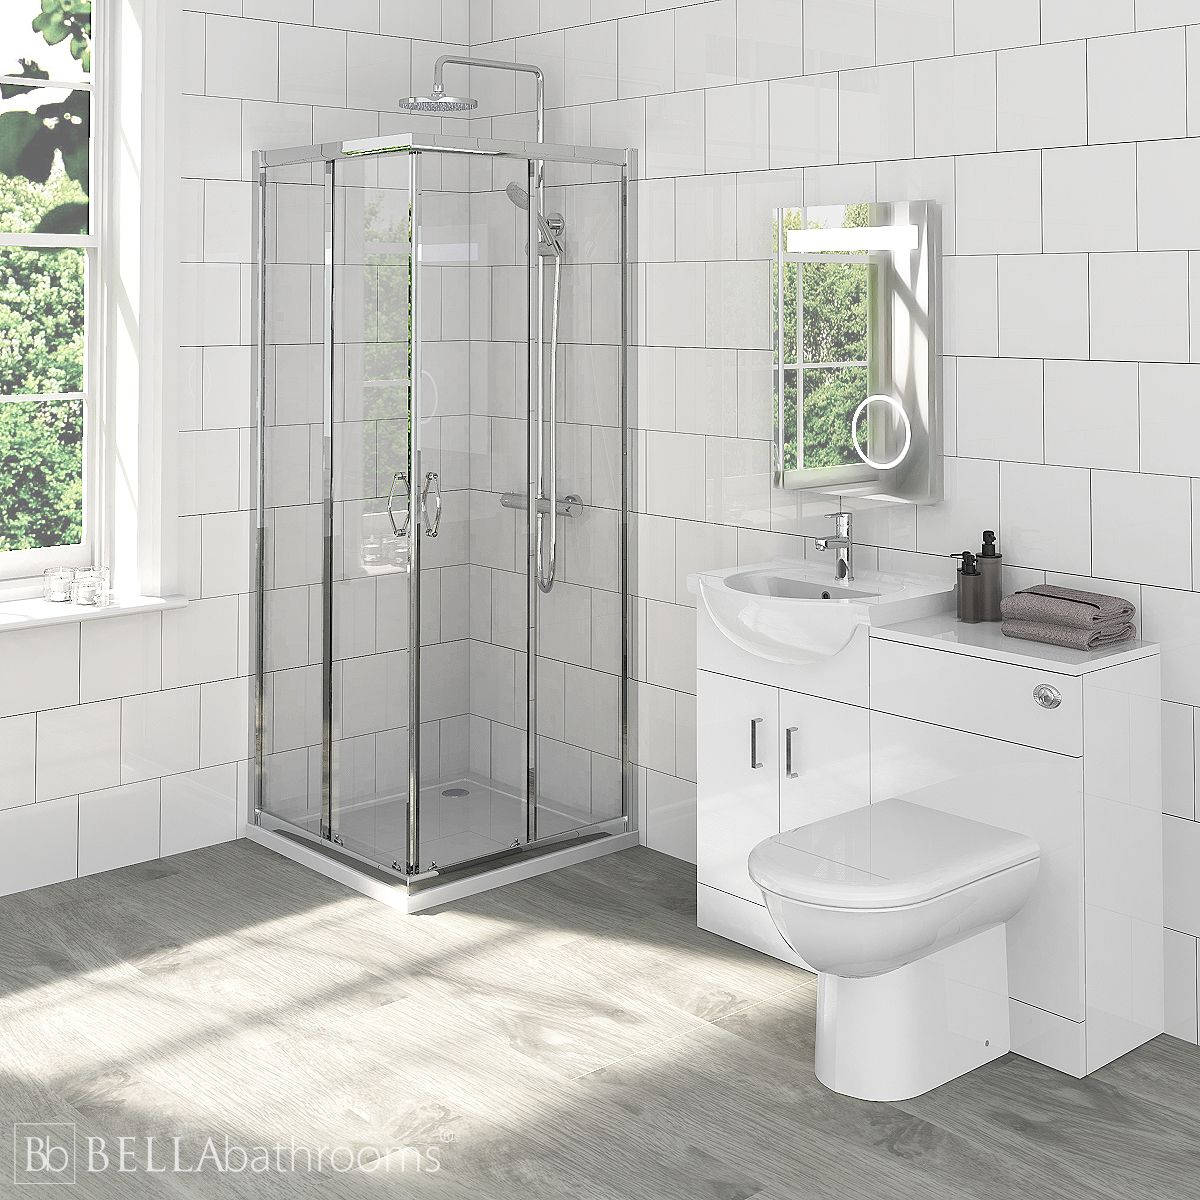 Saturn Bathroom Furniture Pack with Ella Corner Entry Shower Enclosure